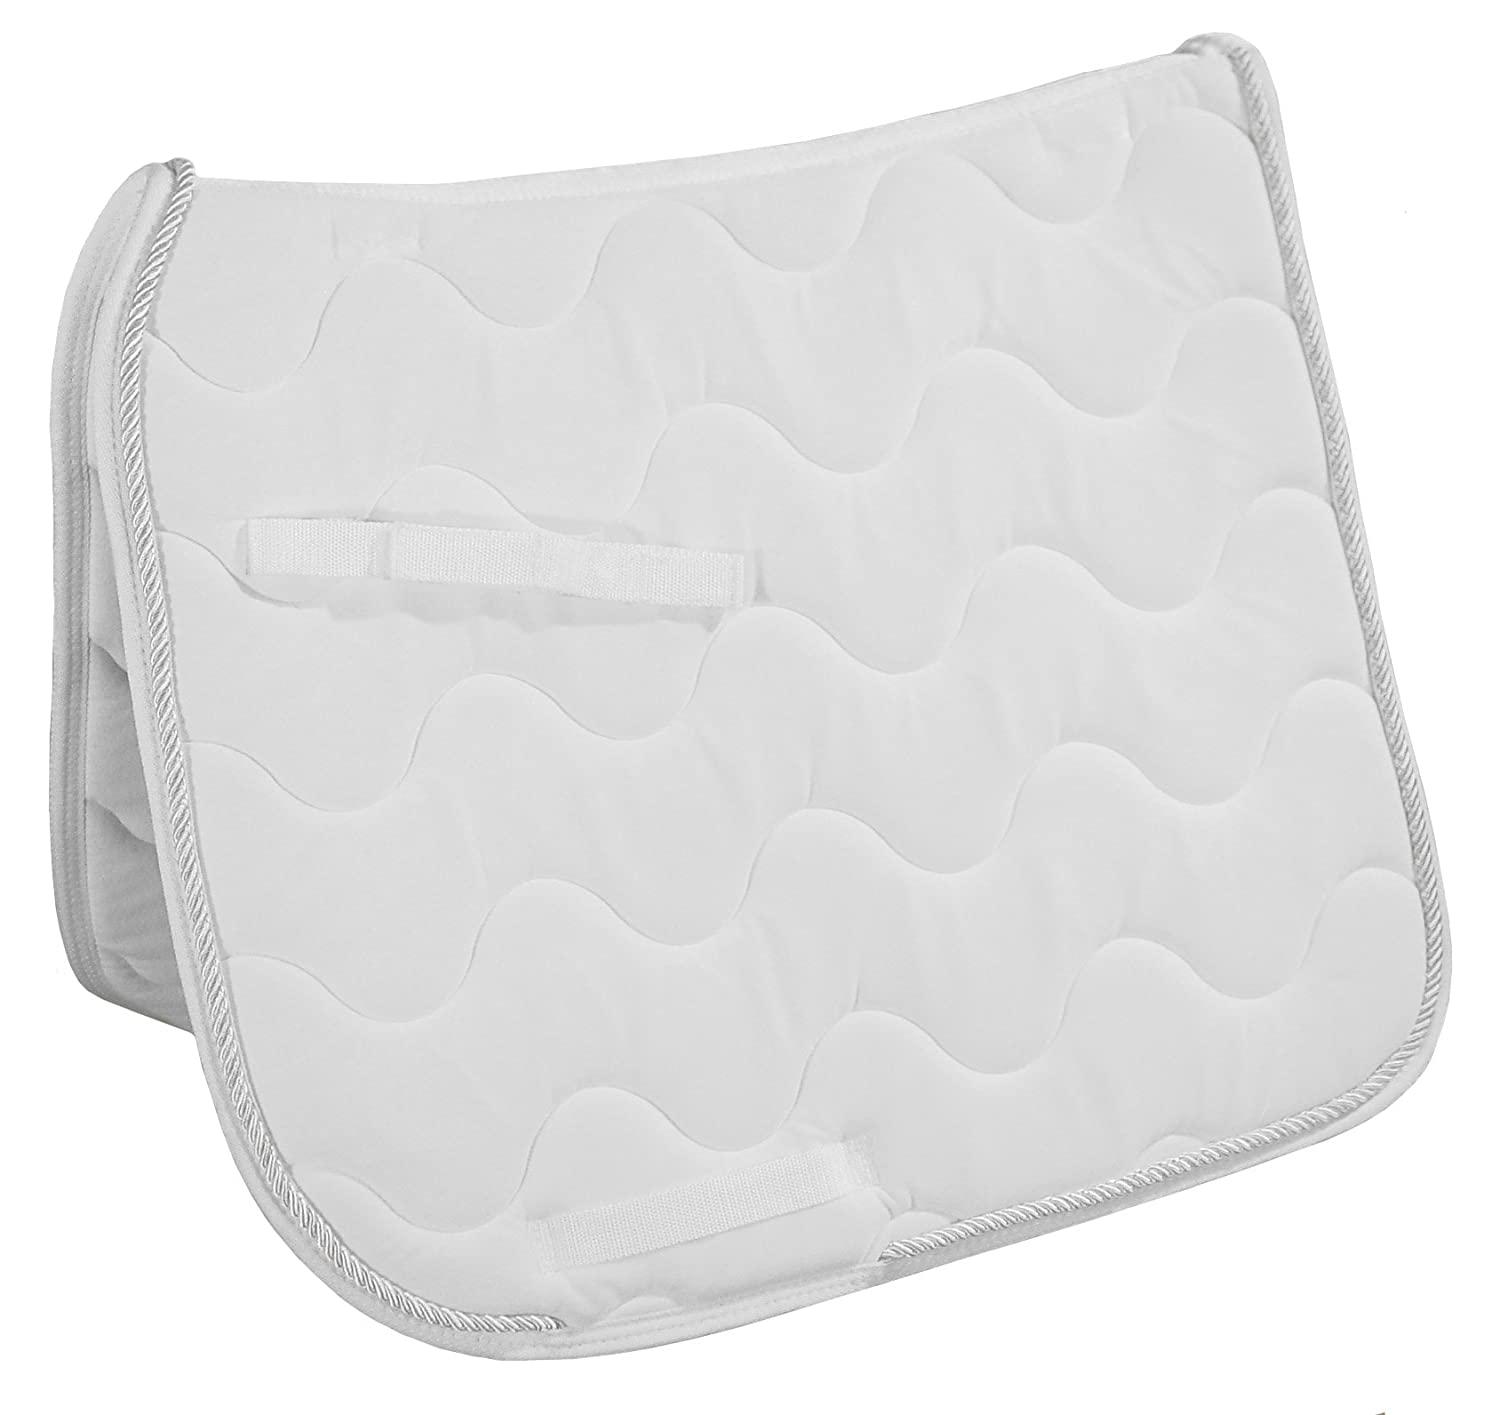 Derby Originals Shock Absorber Quilted Dressage Horse Saddle Pad- Super Sale